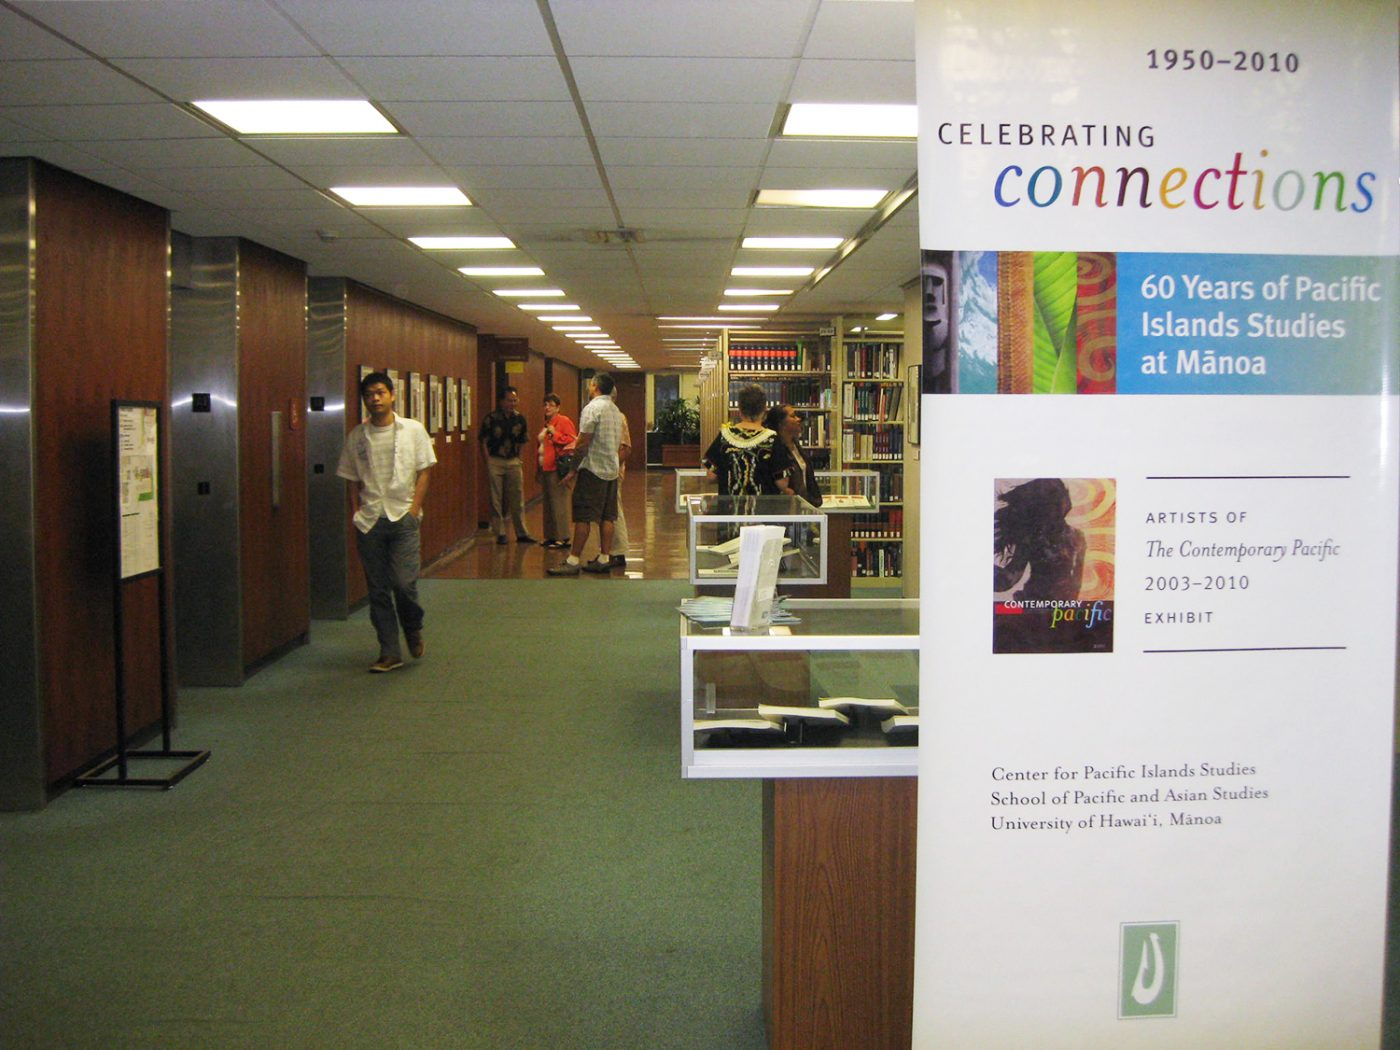 Artists of The Contemporary Pacific 2013-2010 Exhibit in UH Manoa Library